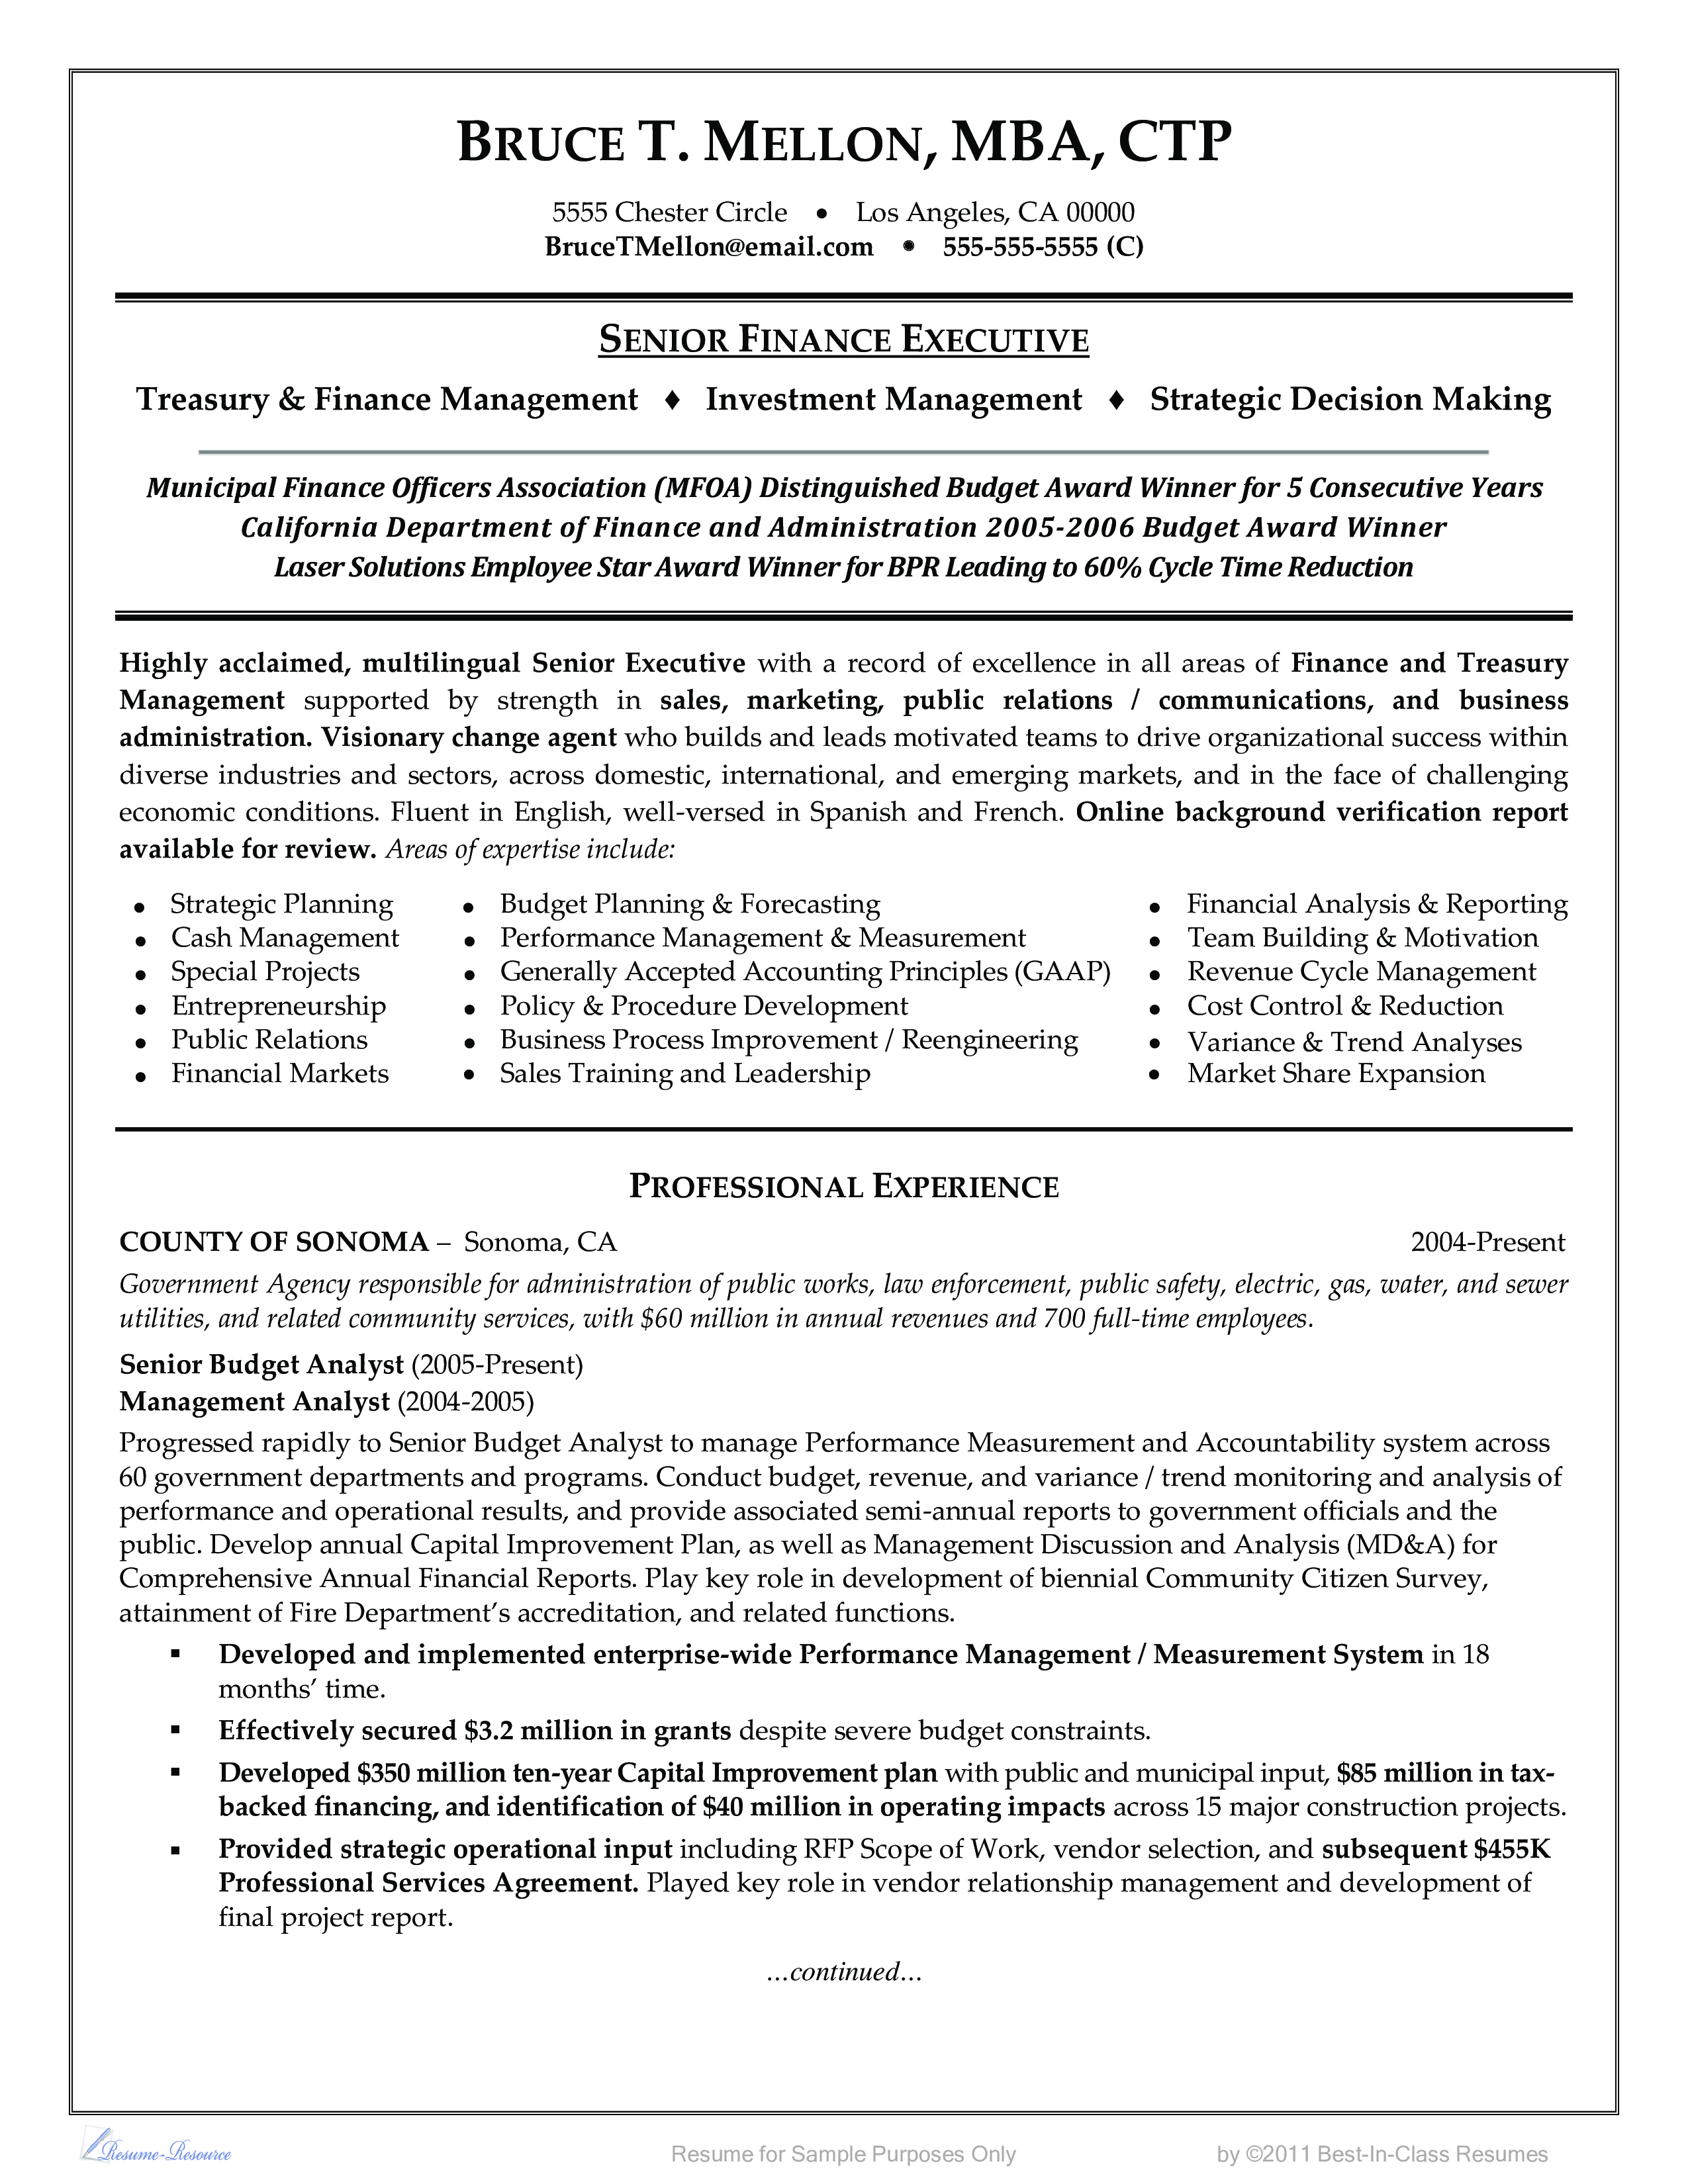 Free Finance Officer Resume Example | Templates at ...